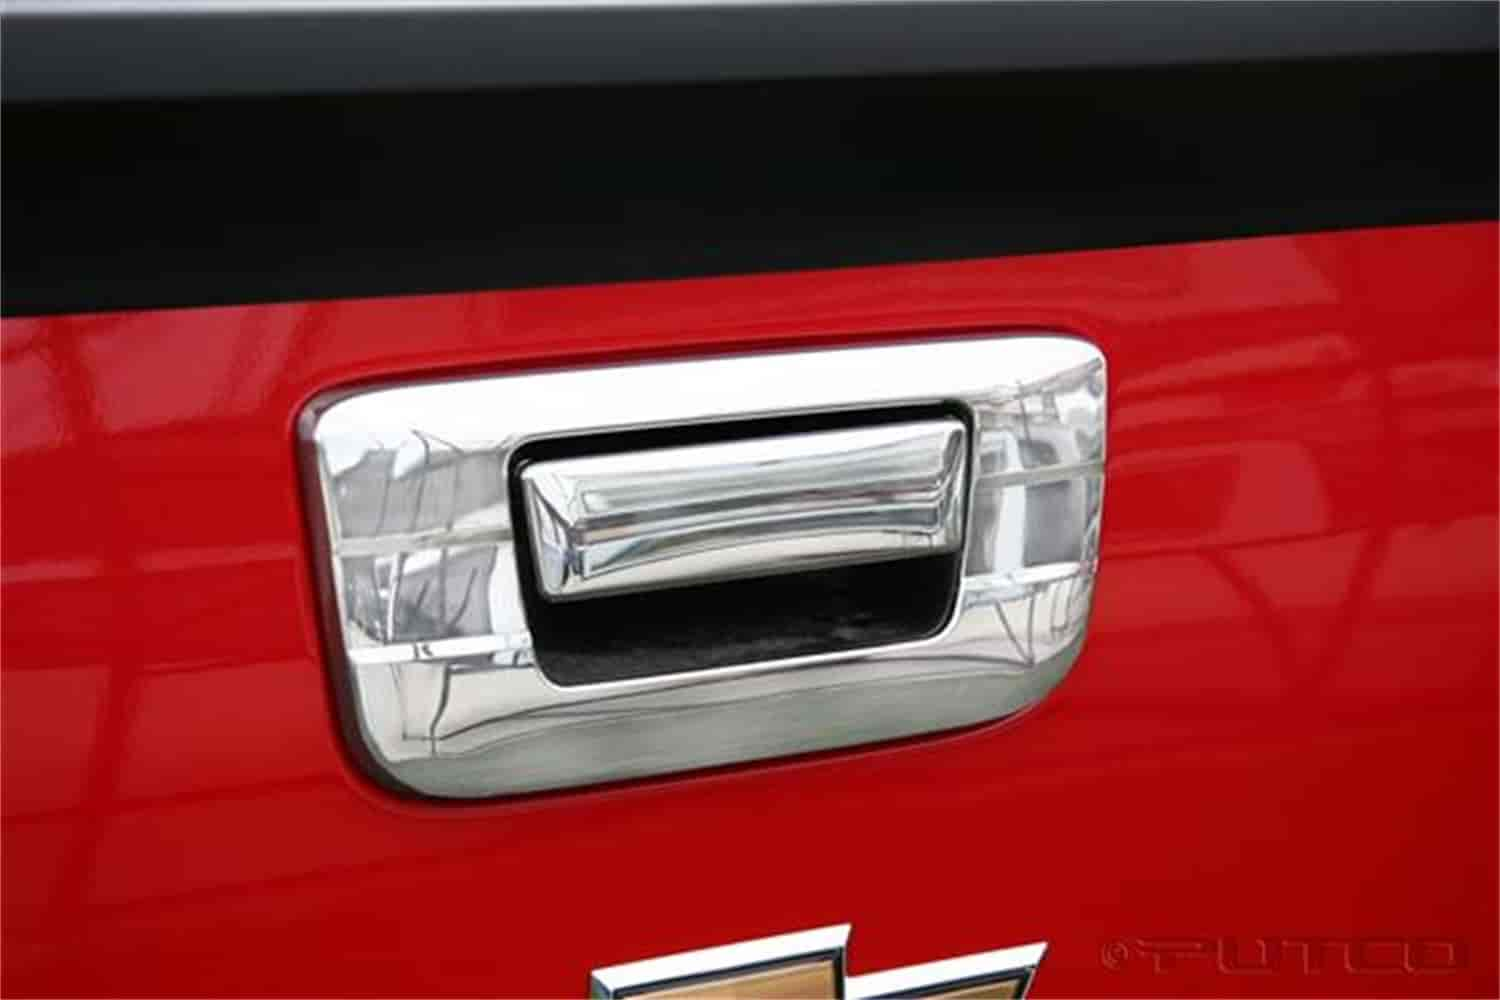 CCI CCITGH65502B - CCI Chrome Tailgate Handle Covers